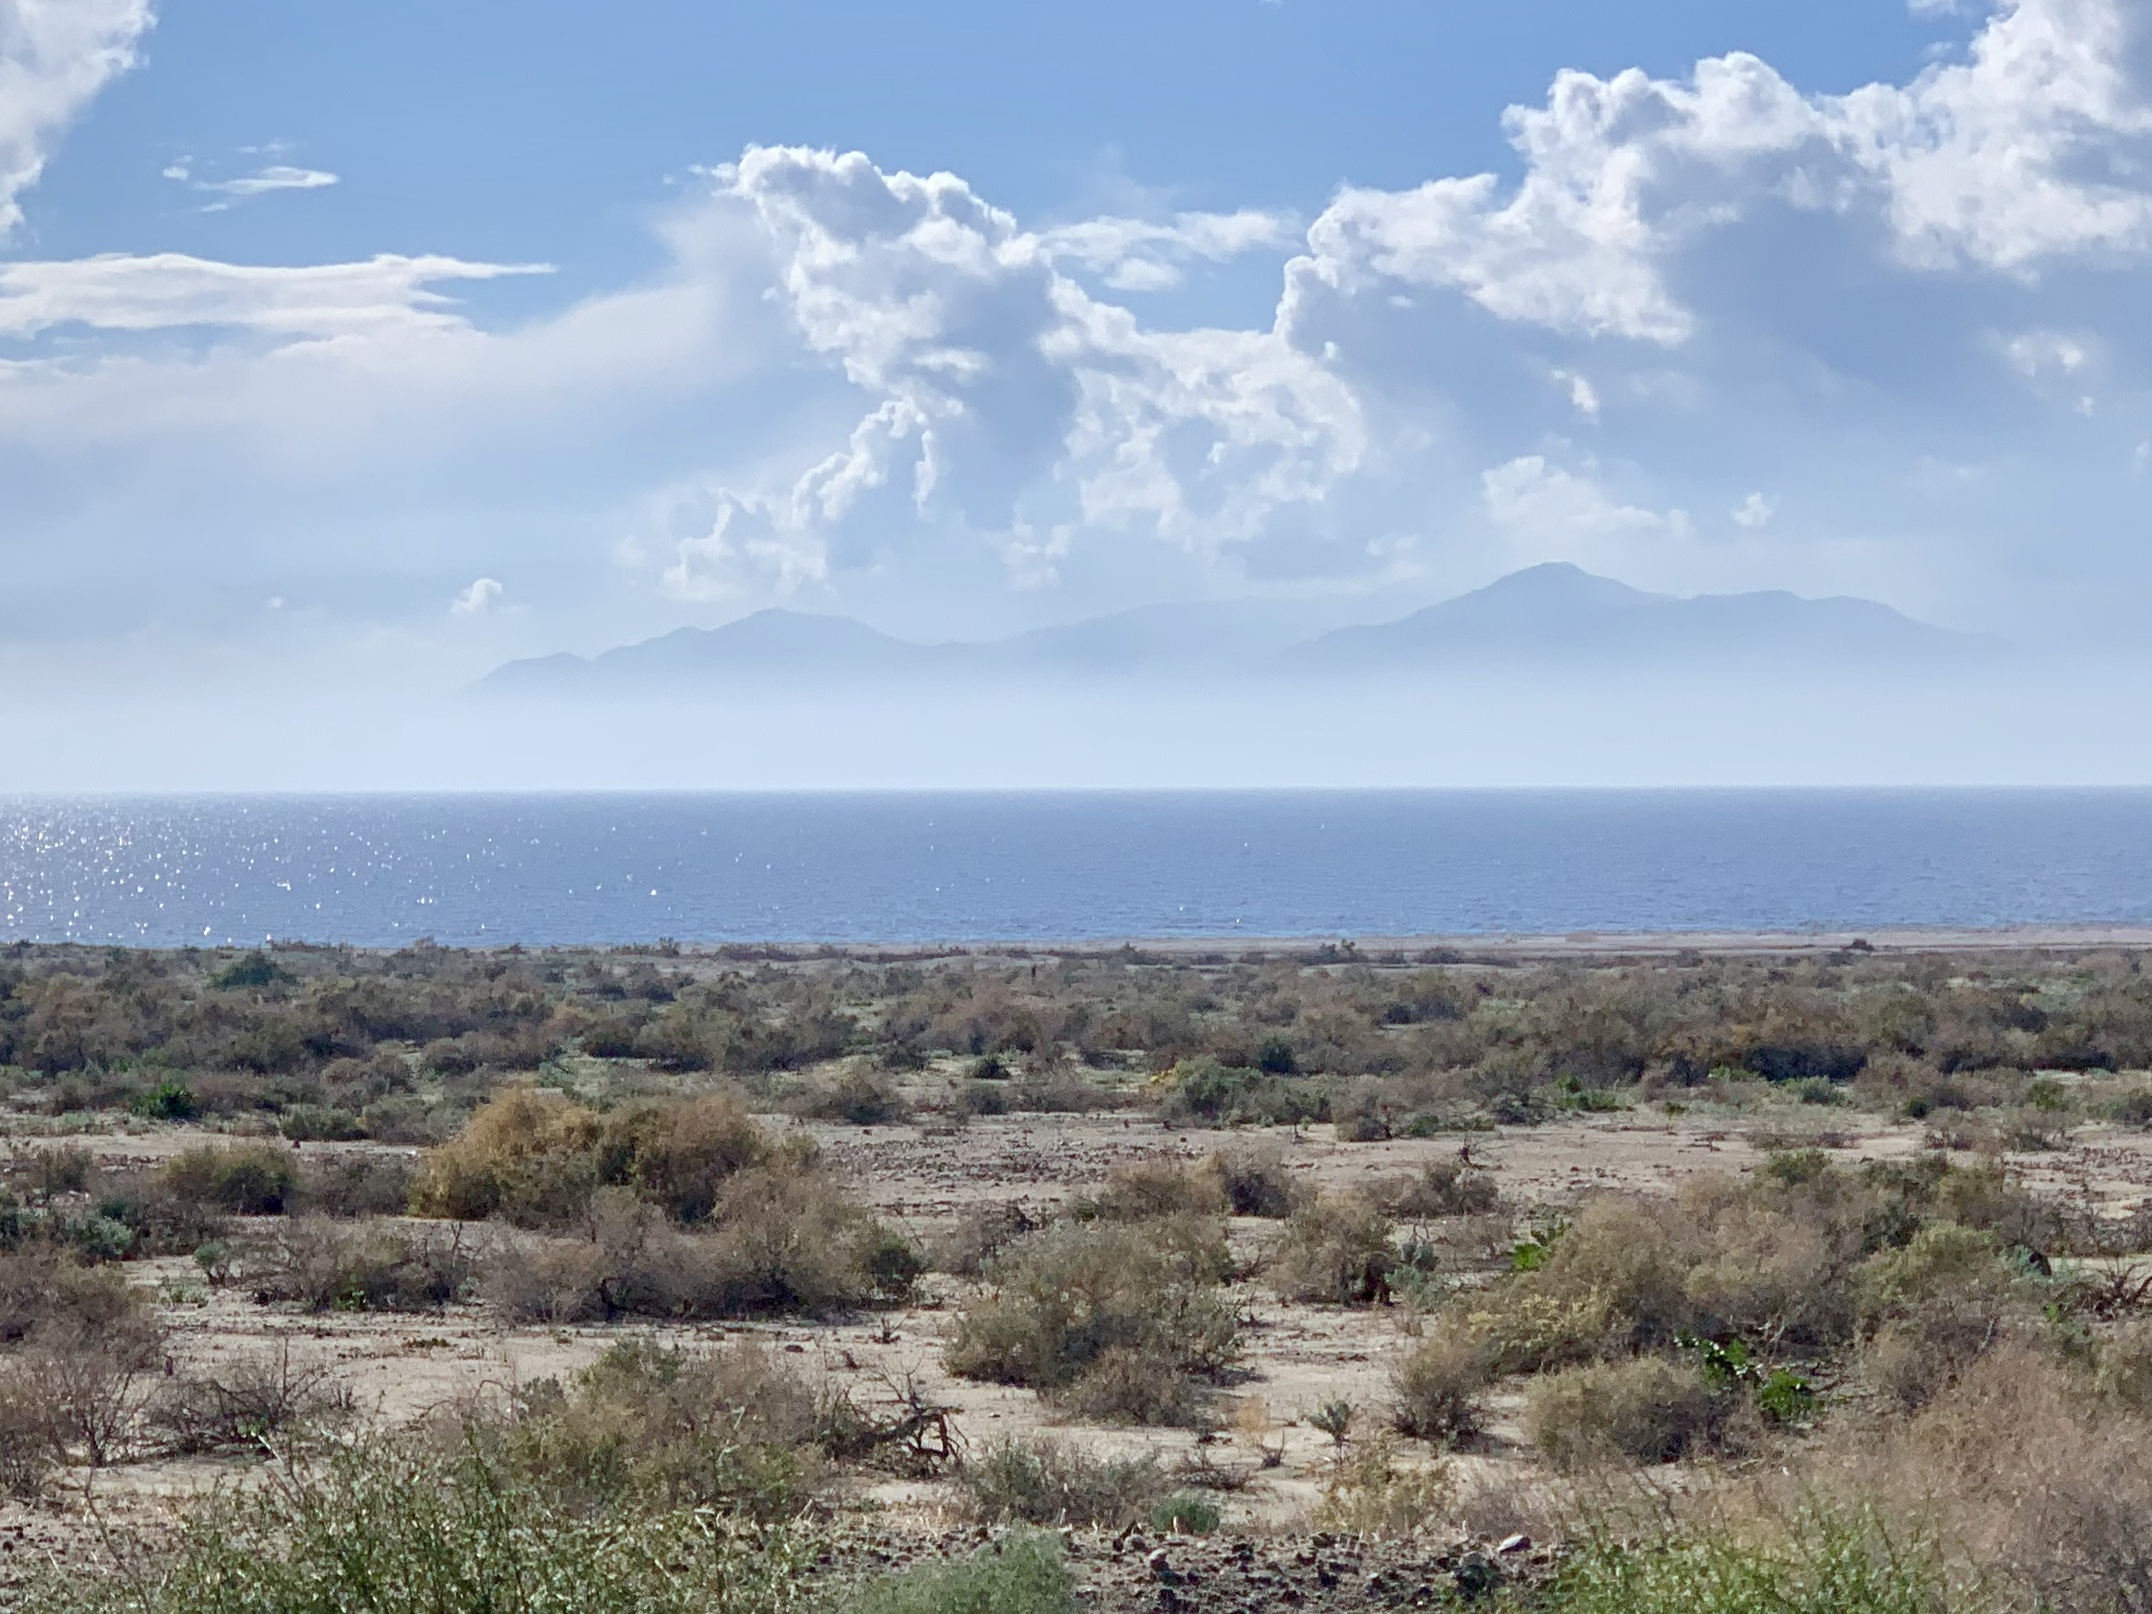 The northern and eastern shore of the Salton Sea is remarkably empty. The first 20 miles of the coast from the north shore are protected by at least three county parks. I was surprised and delighted to see this.